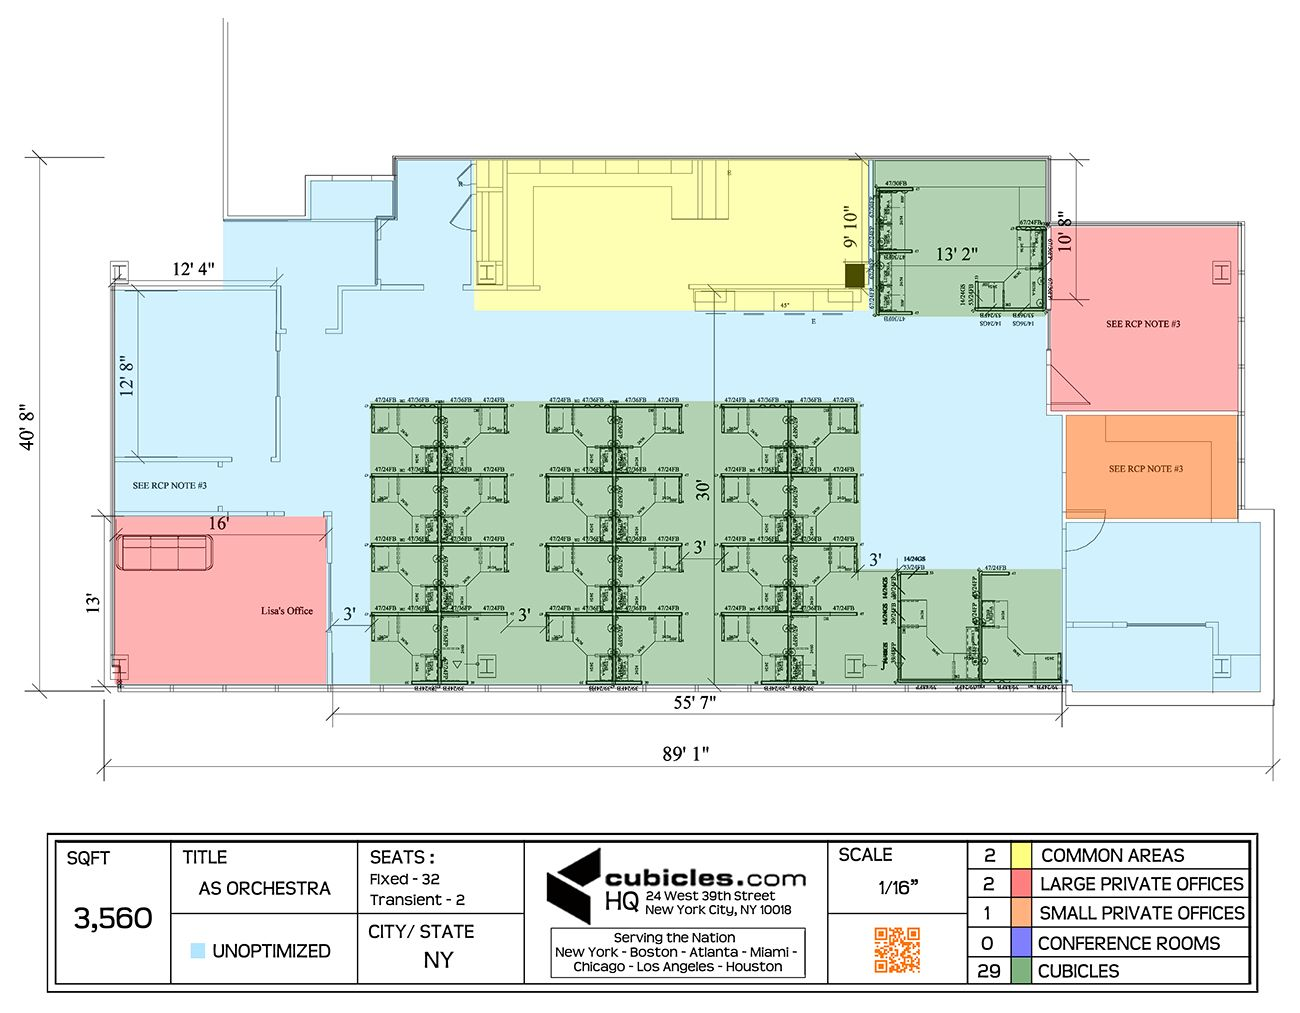 Office layout plan with 29 cubicles for 32 people on sqft for Cubicle floor plan